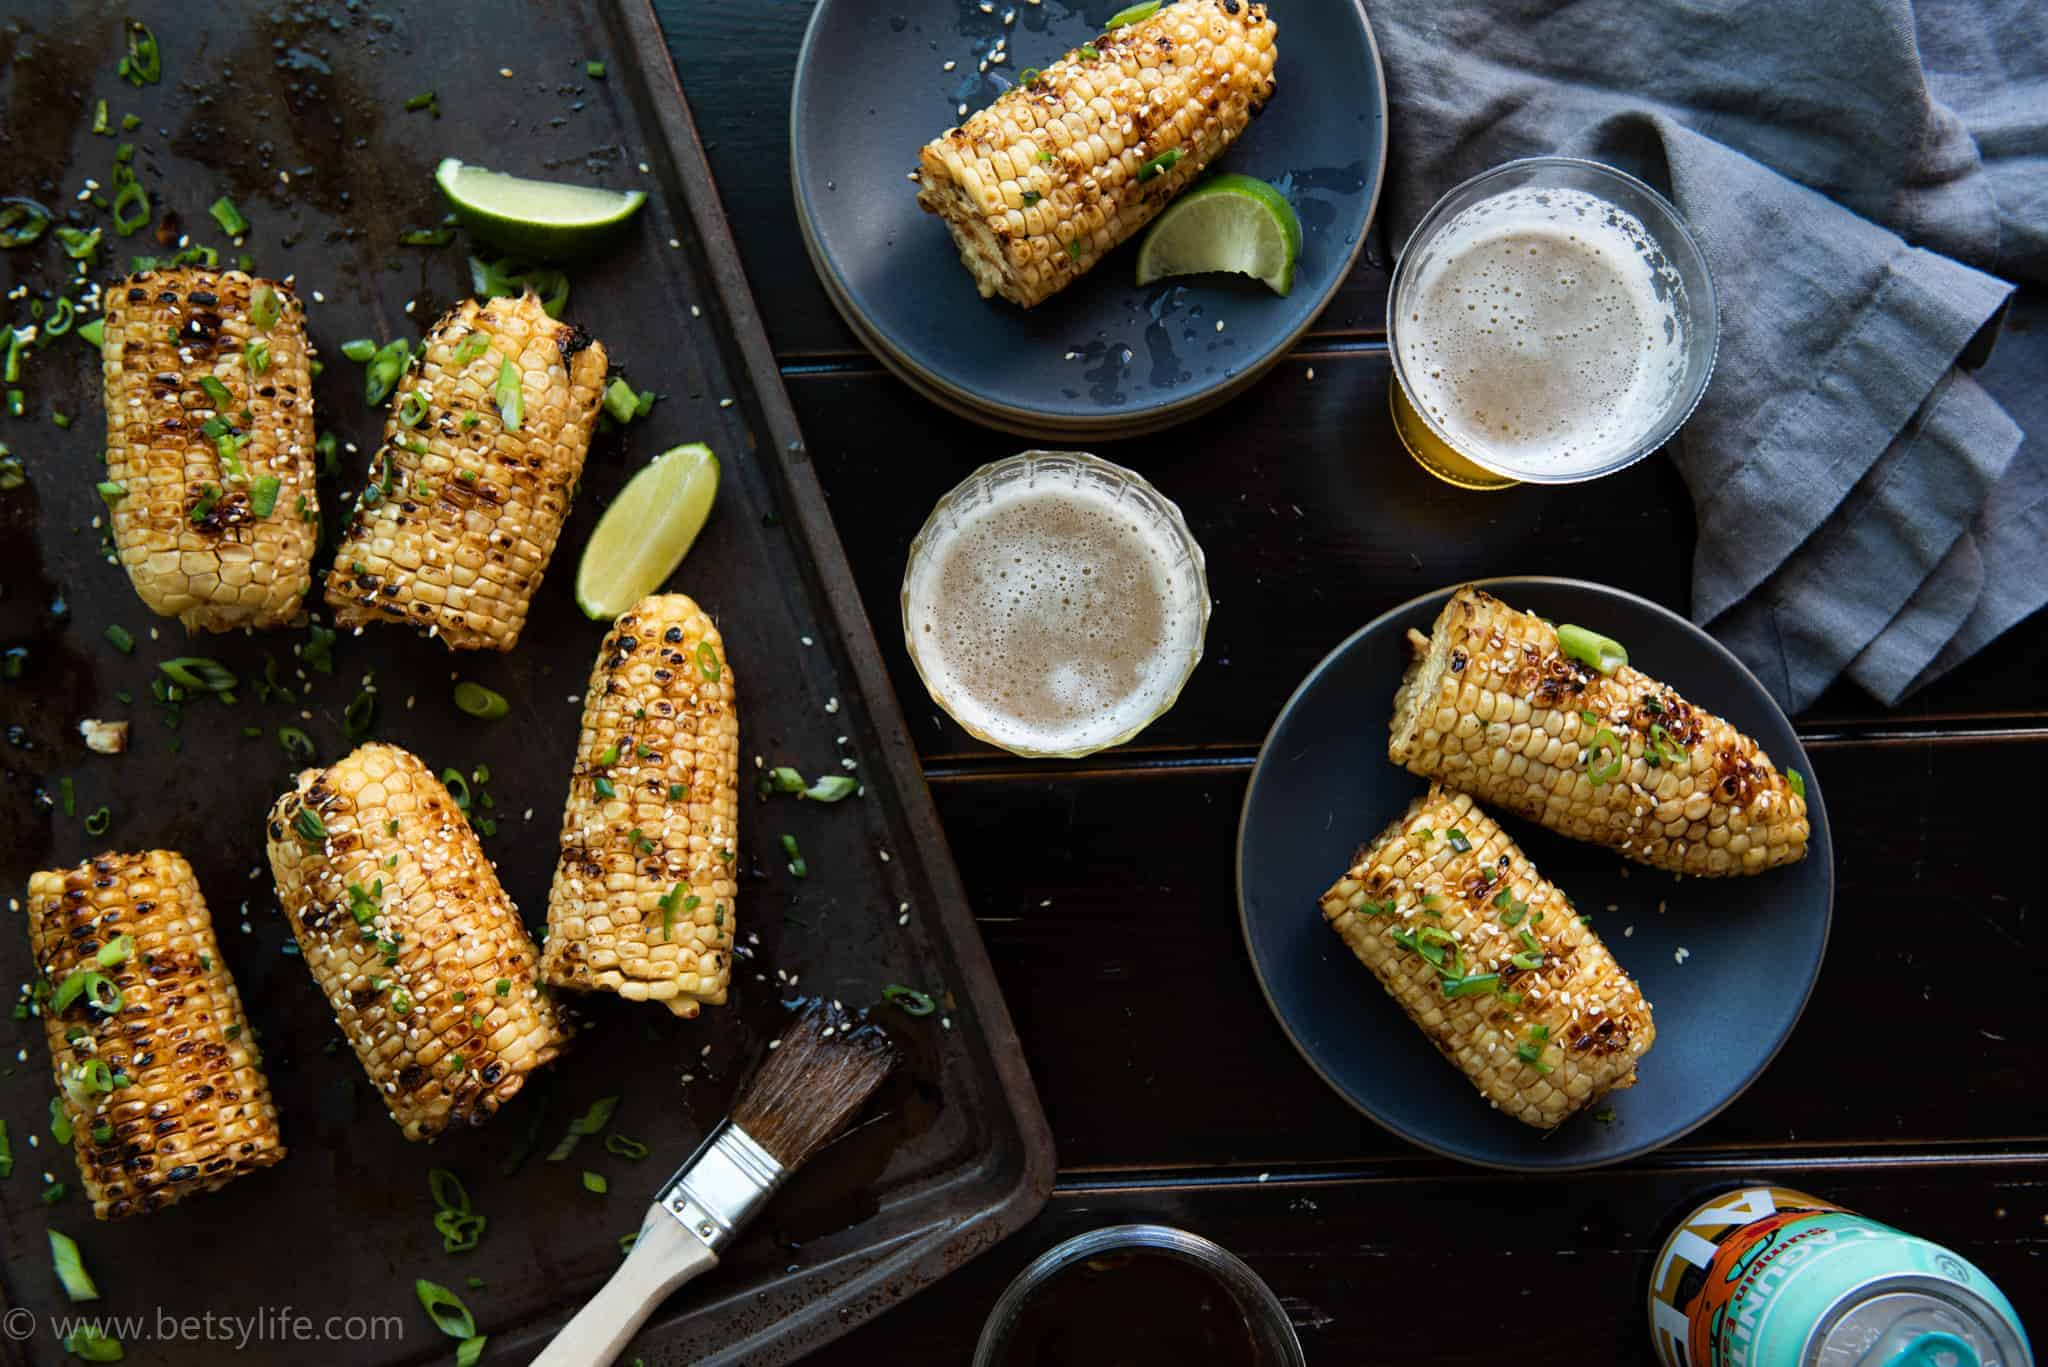 Table with tray of sesame glazed corn on the cob with two dark plates with corn servings and two beers